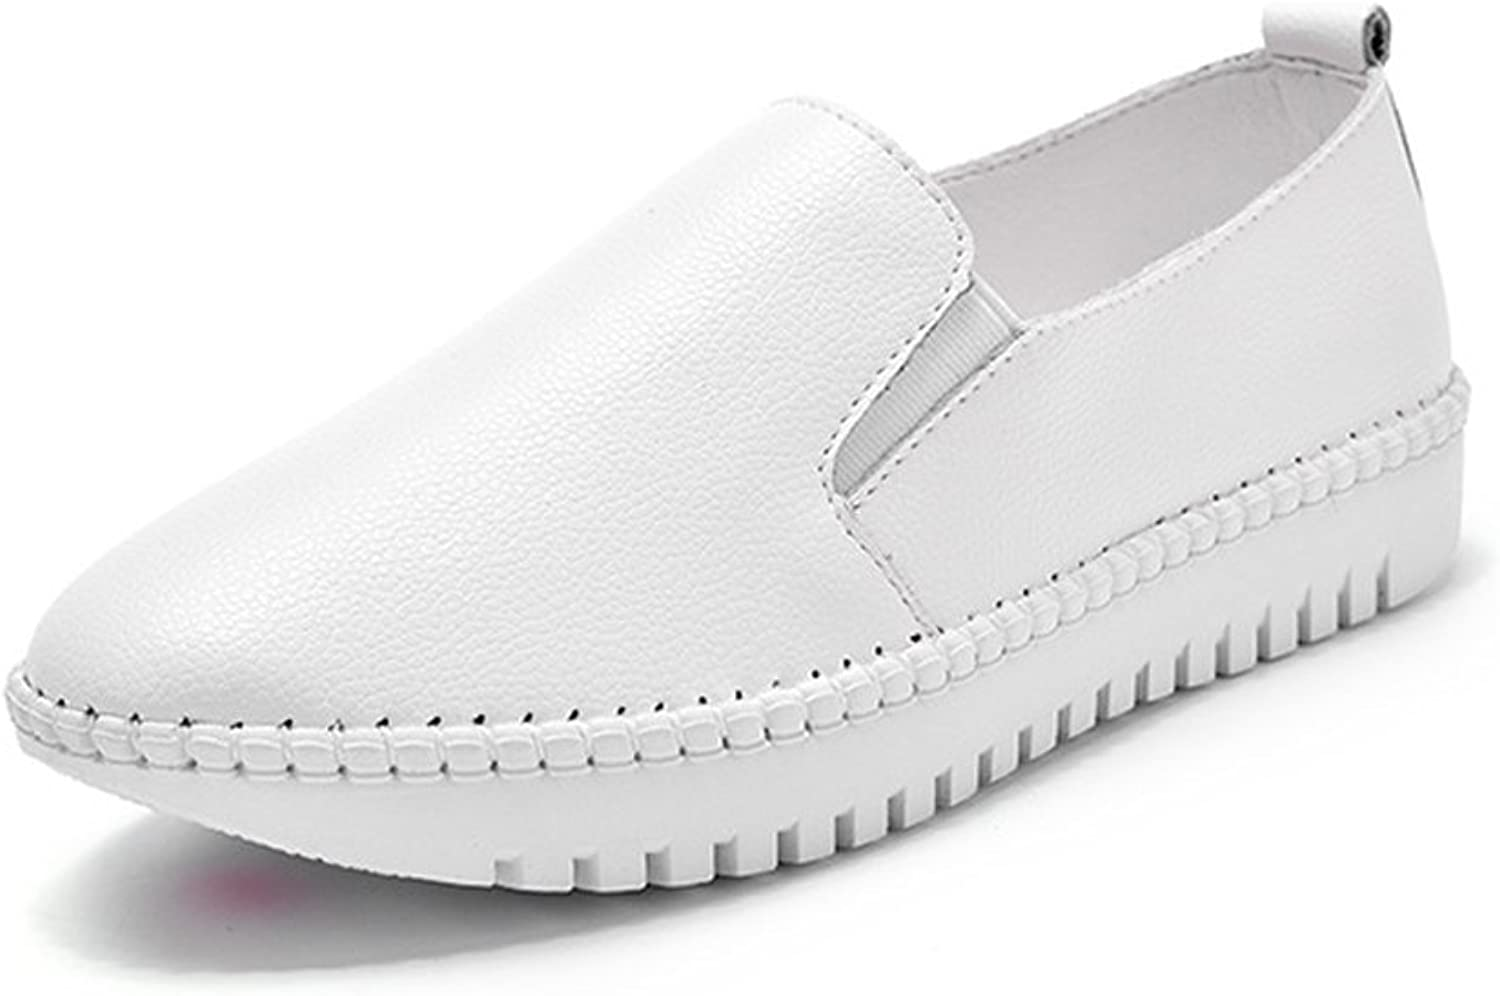 T-JULY Loafers shoes for Women - Casual Slip On Elastic Anti-Slip Platform Round Toe Comfy Penny